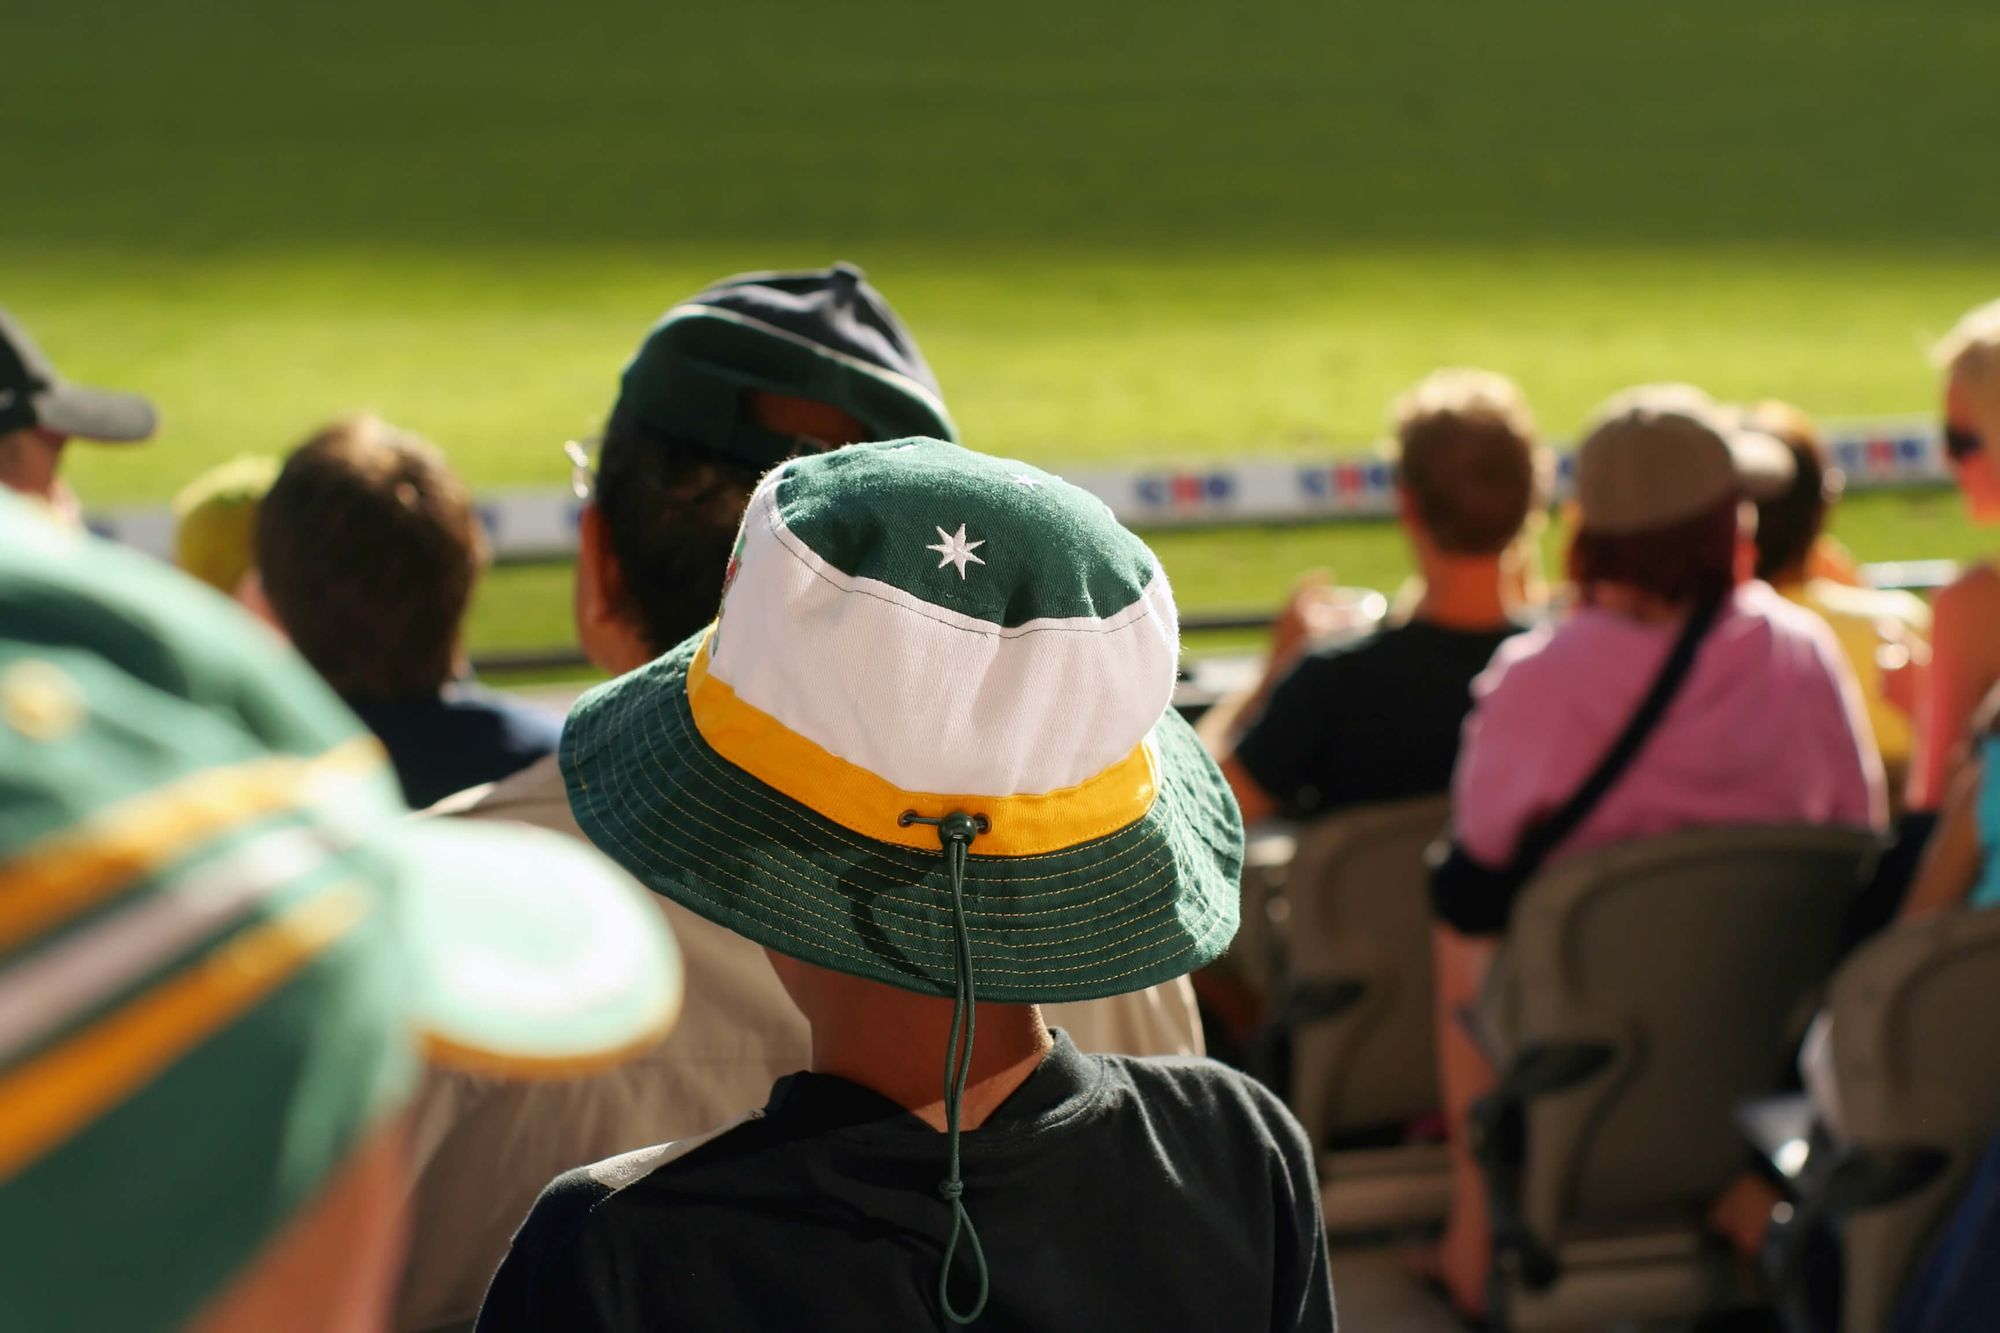 Great news for Melbourne as crowds predicted for Boxing Day Test